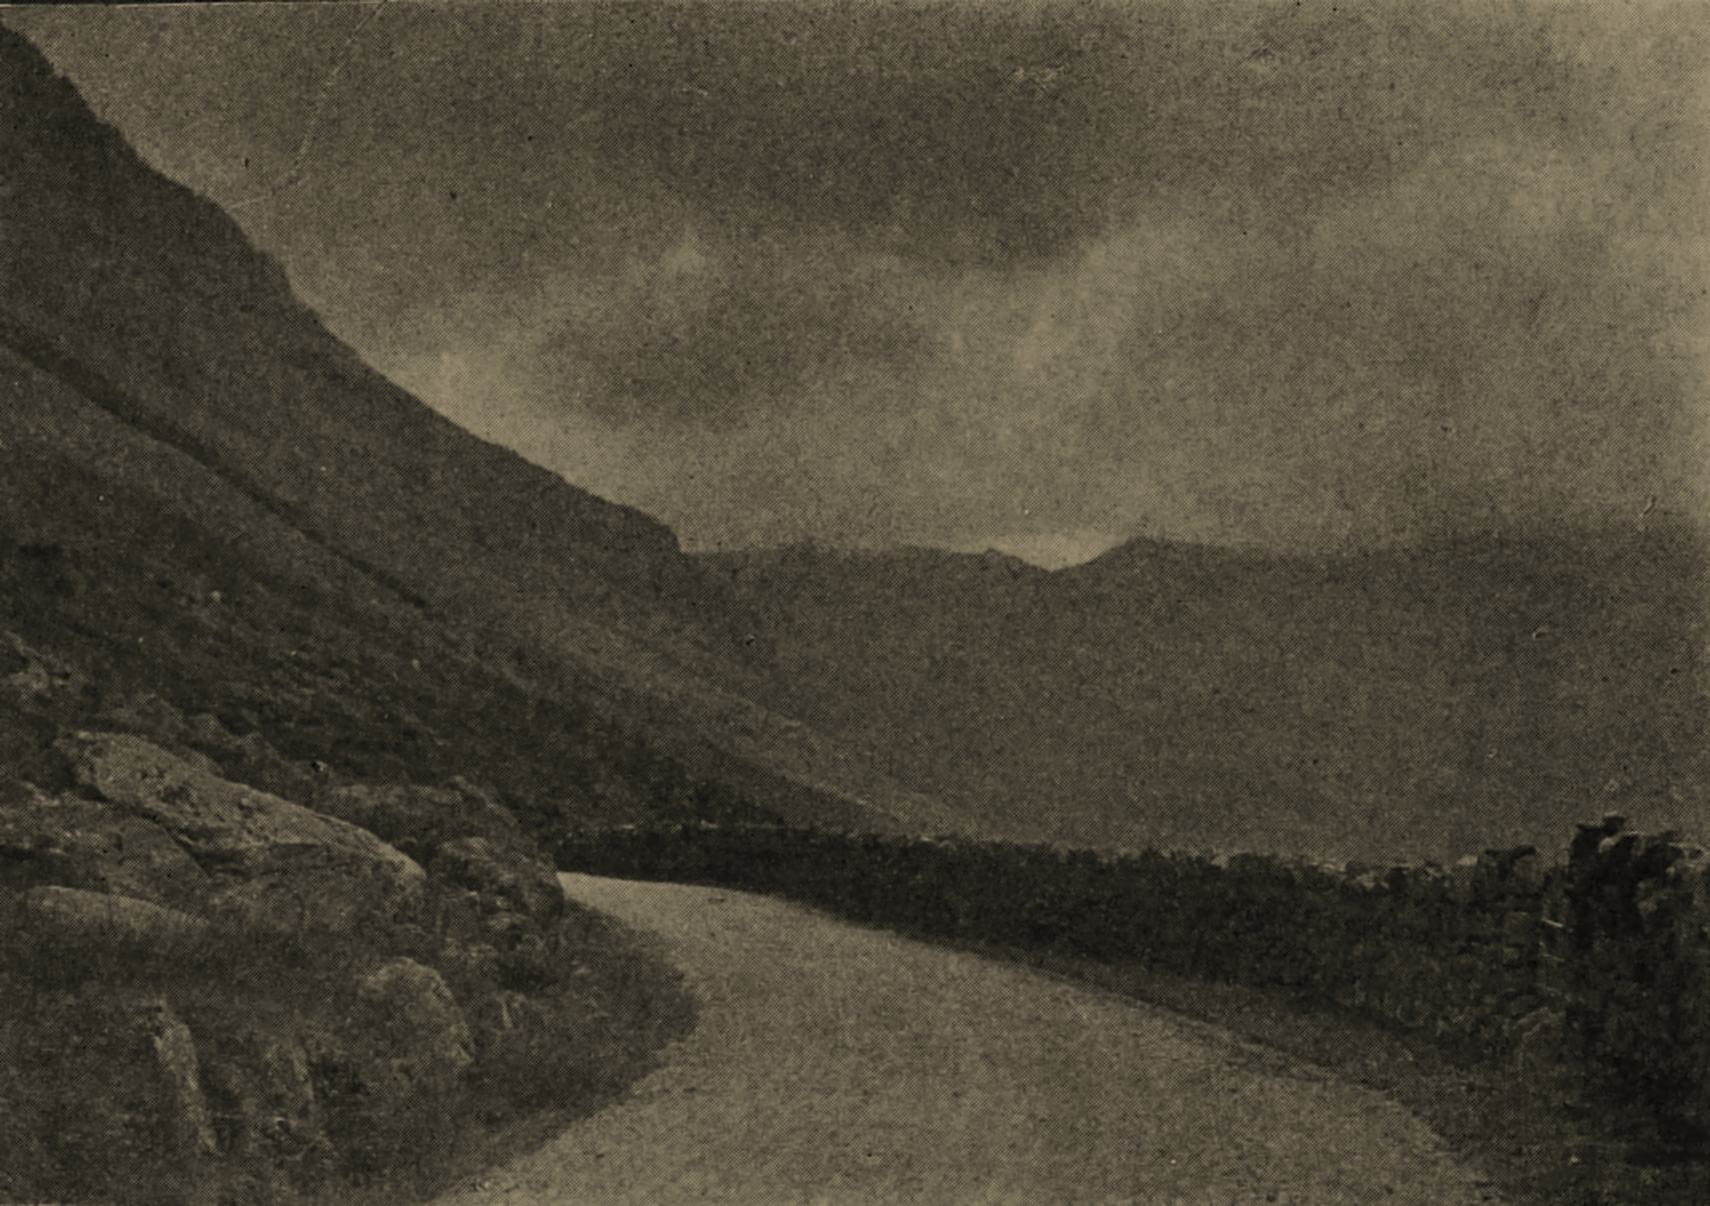 The Nant Ffrancon Pass (North Wales) by V. Serin about 1908